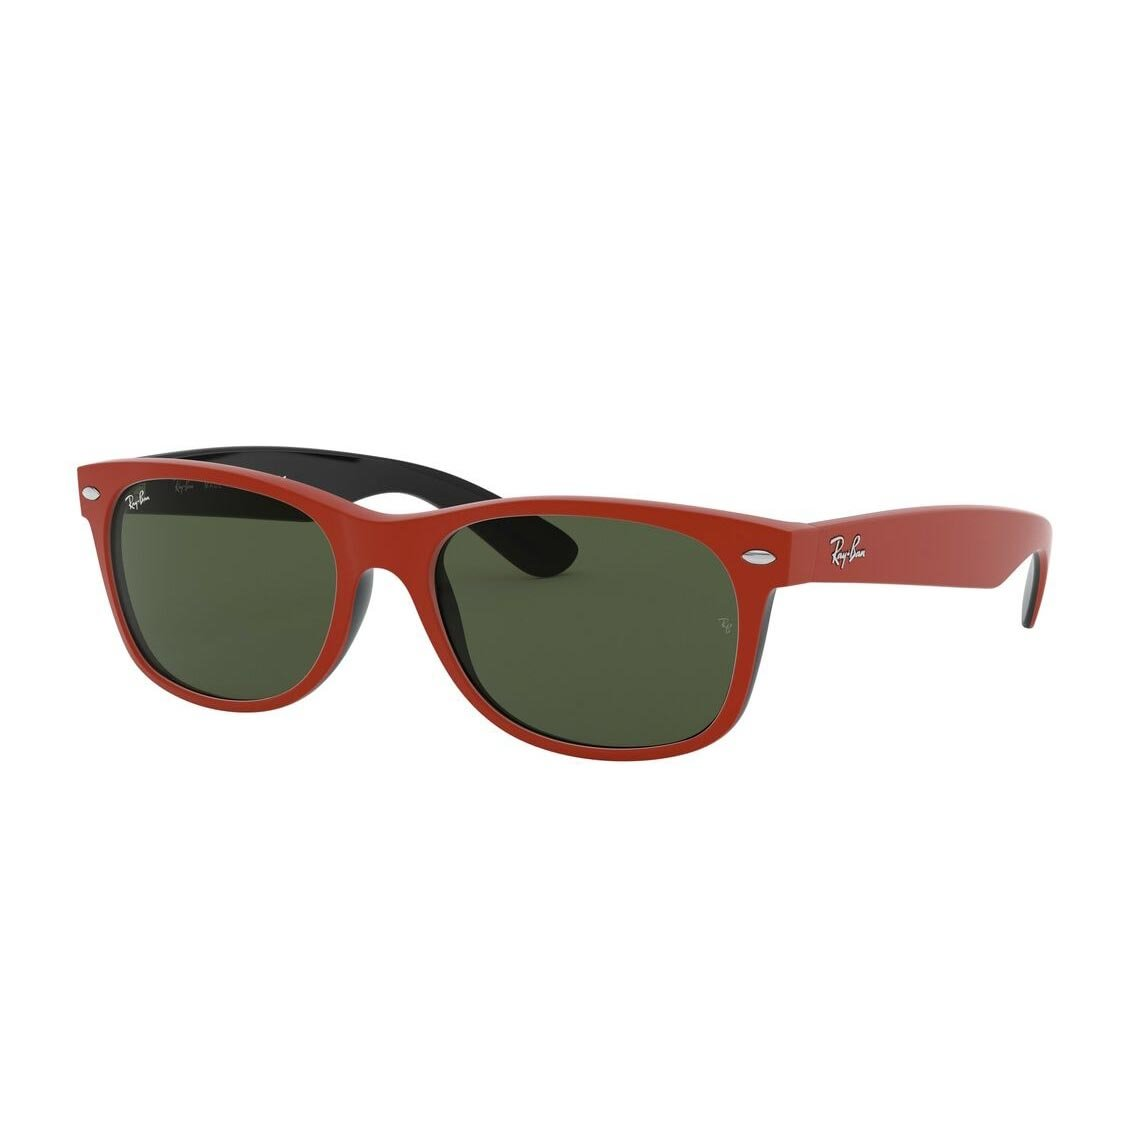 Ray-Ban New Wayfarer RB2132 646631 5518